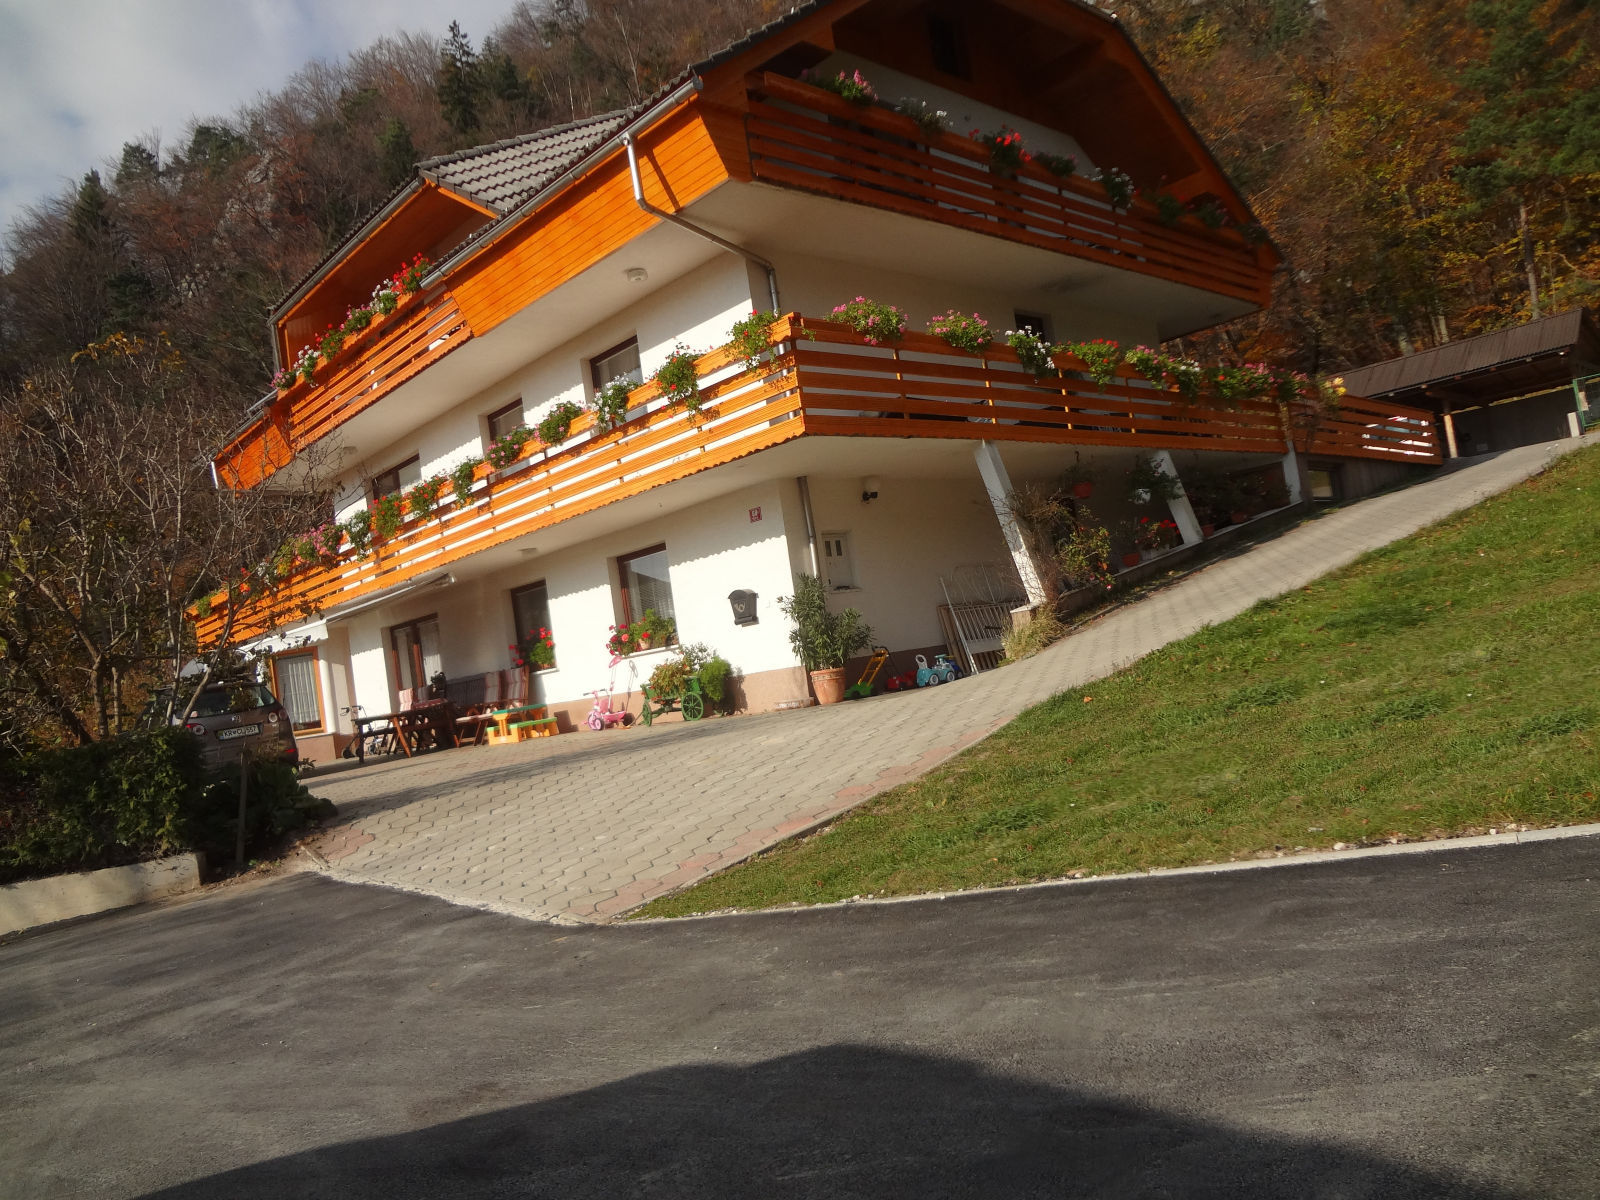 The resurfaced driveway and parking area of Apartments Fine Stay in Slovenia